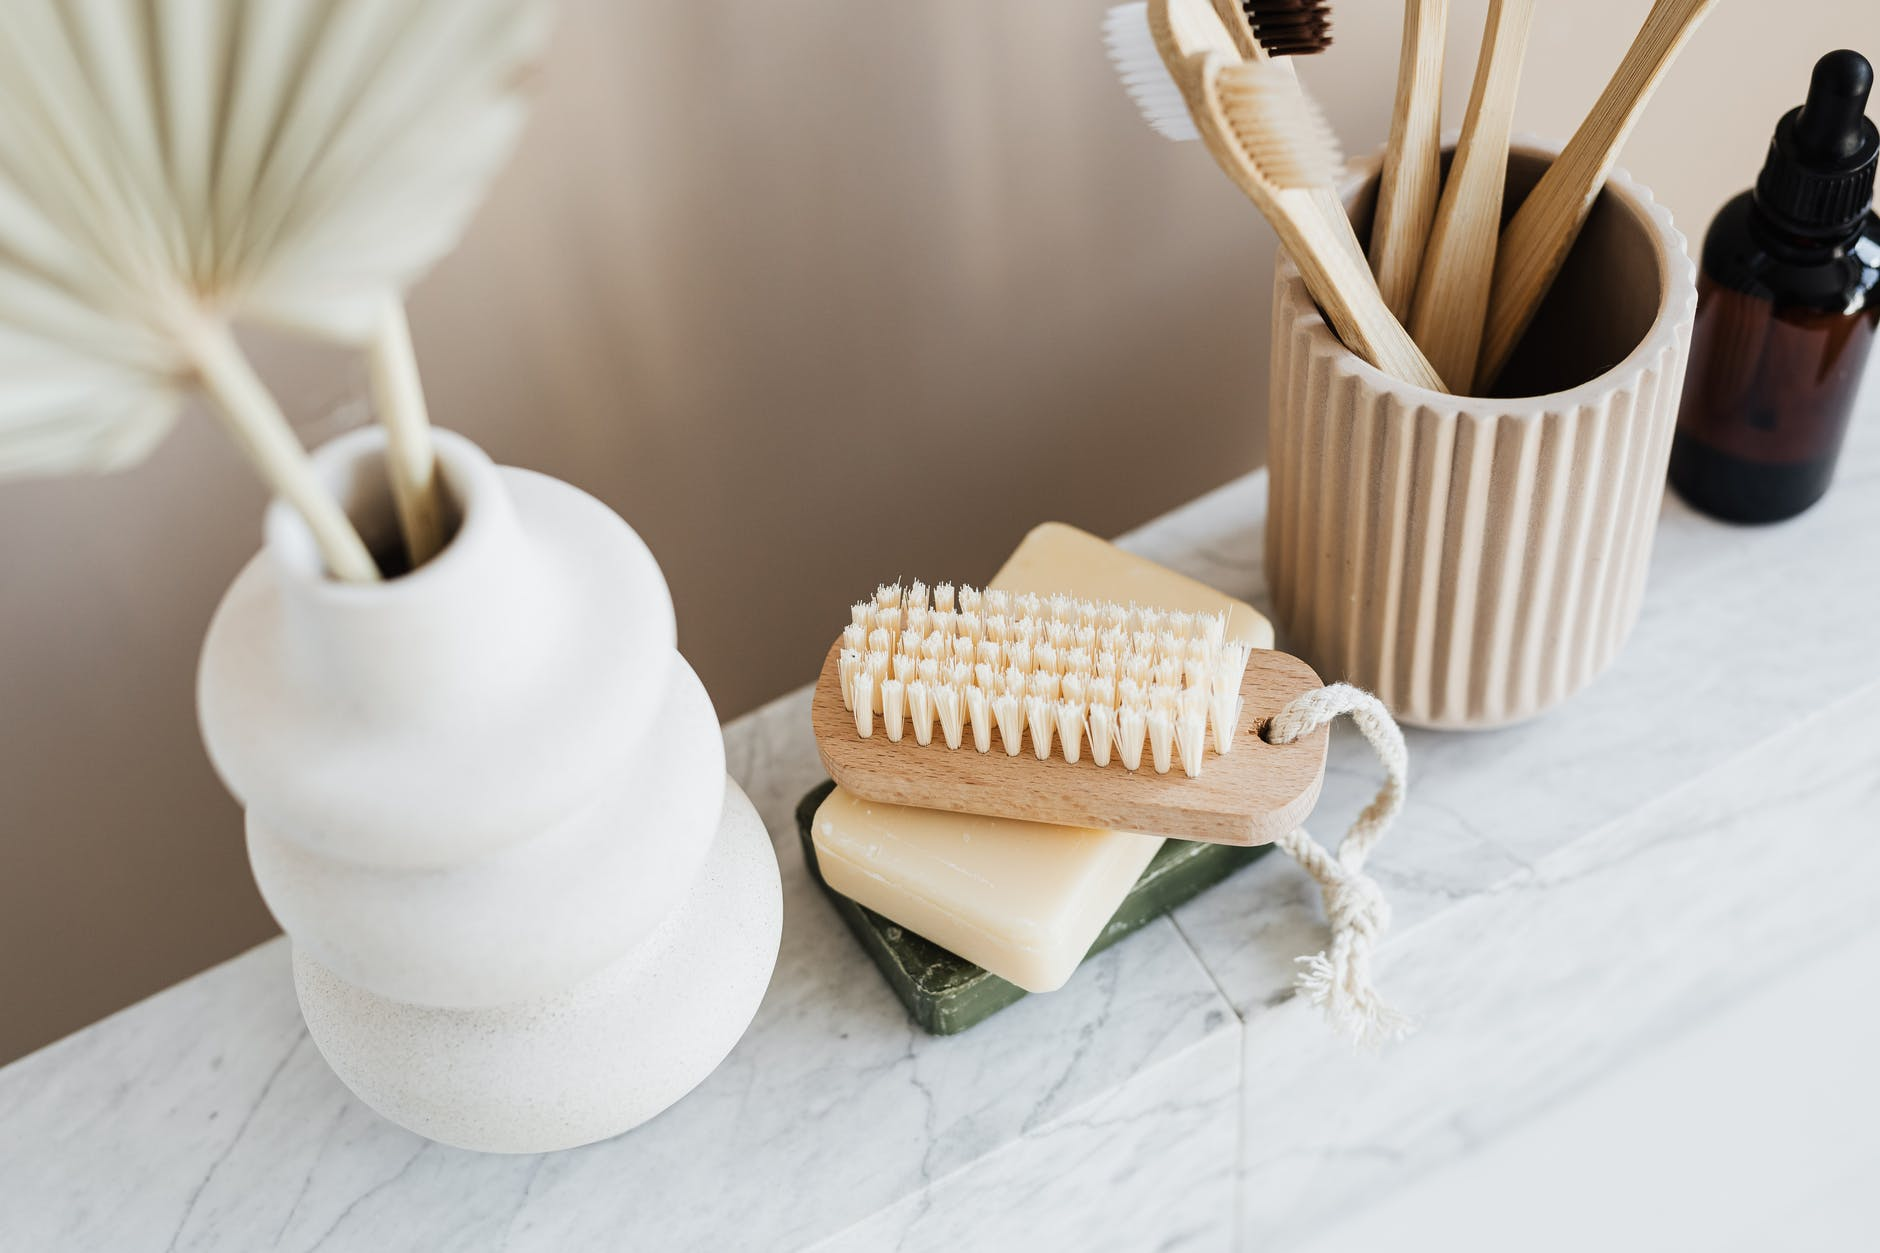 set of natural toiletries on marble tabletop